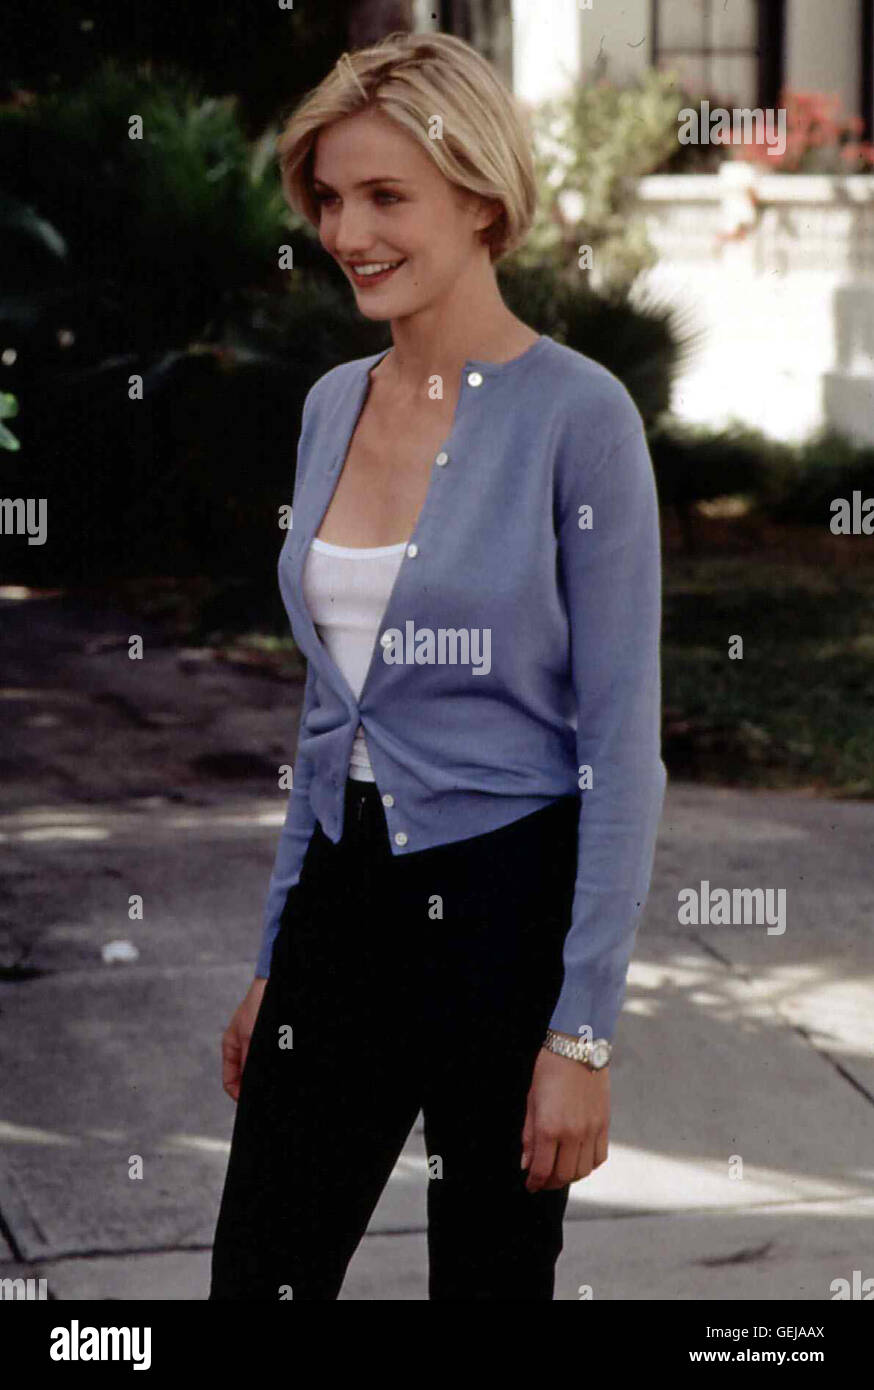 Cameron Diaz Mary (Cameron Diaz) *** Local Caption *** 1998, There's Something About Mary, Verrueckt Nach Mary - Stock Image